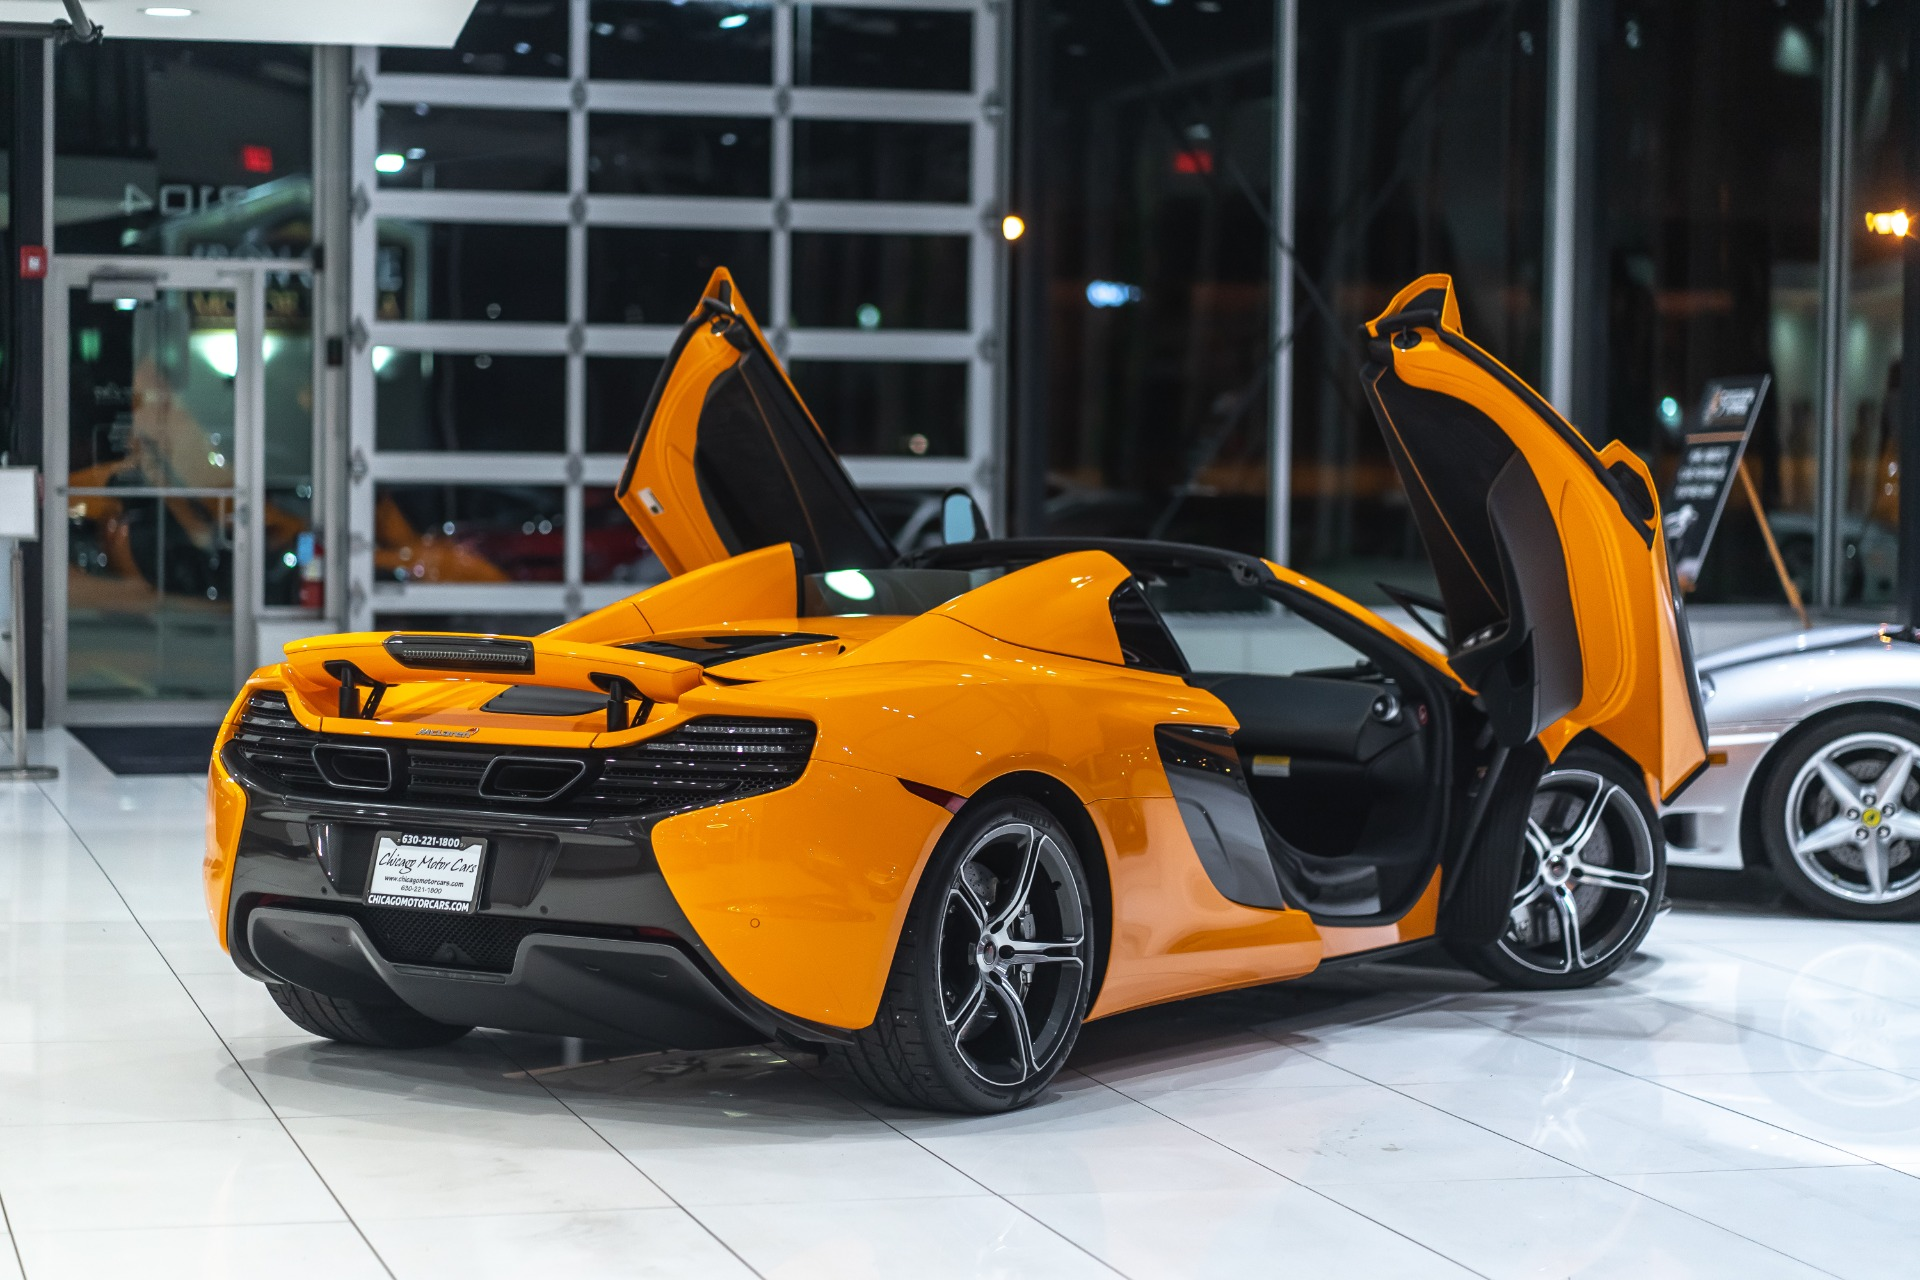 Used-2015-McLaren-650S-Spider-Convertible-ELITE-PAINT-LOADED-WITH-CARBON